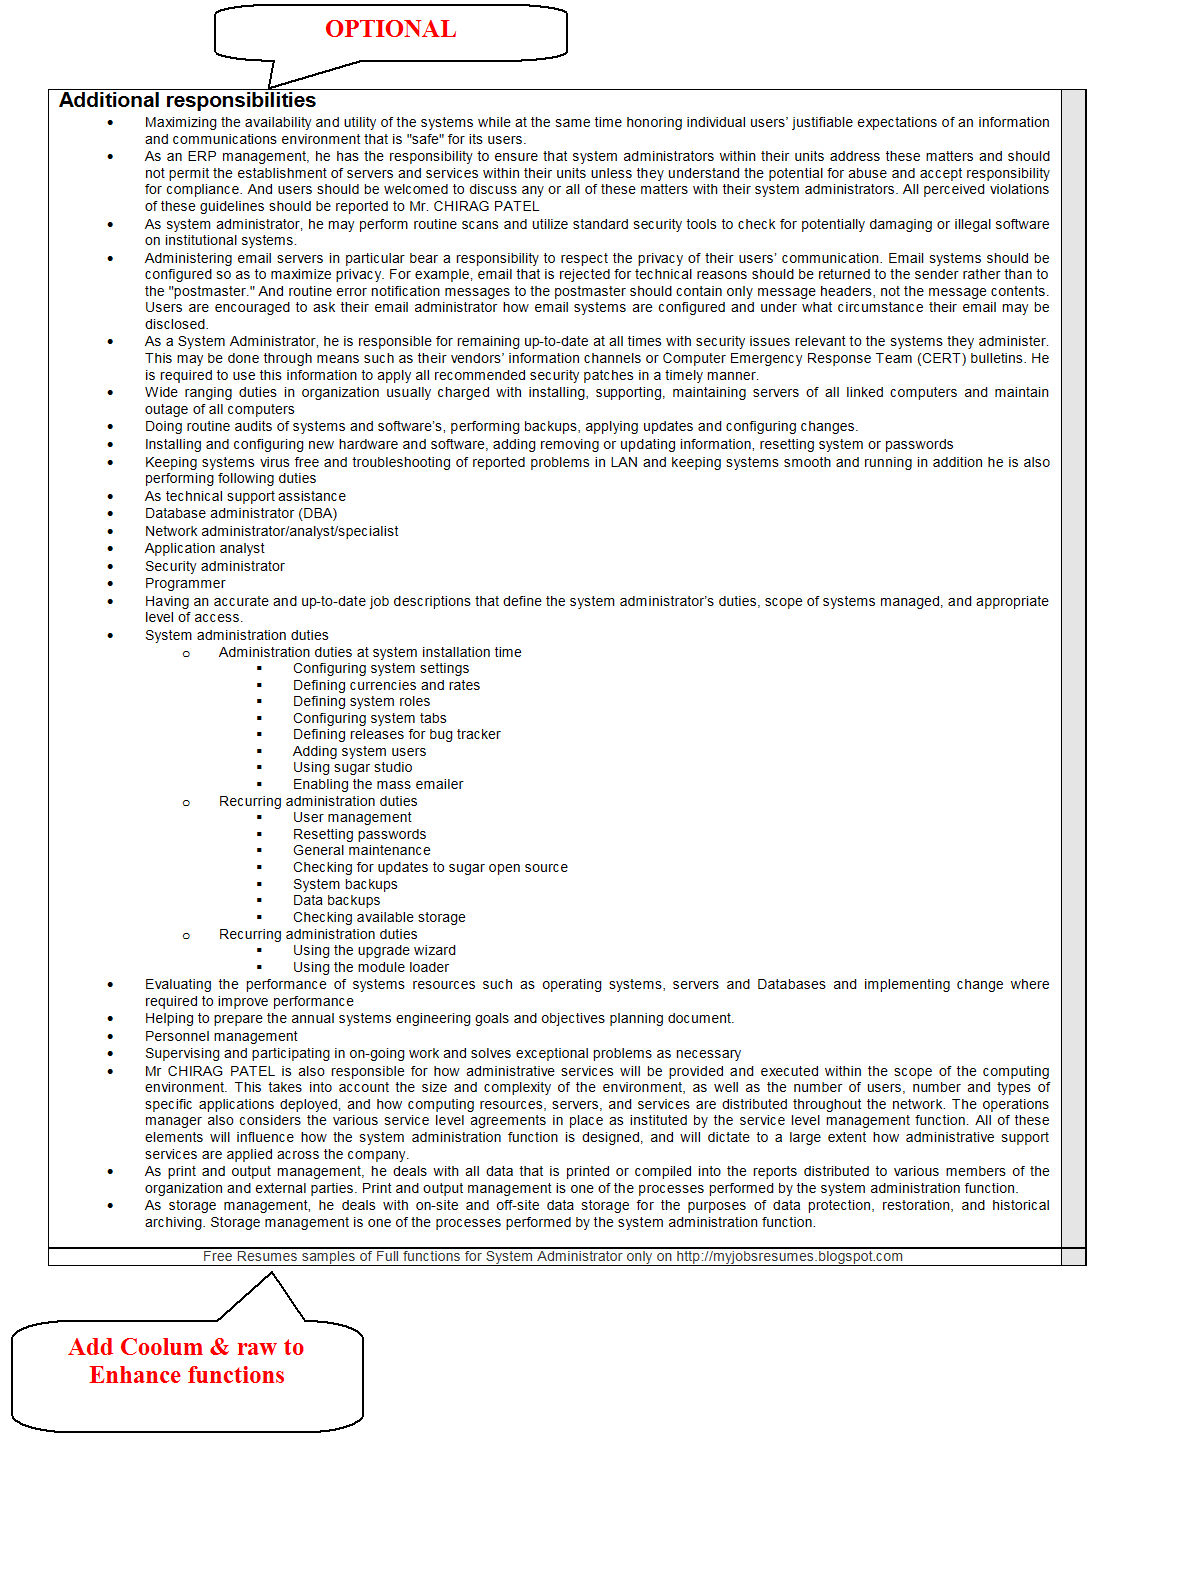 fresh jobs and resume samples for jobs cv for system cv for system administrator pg 2